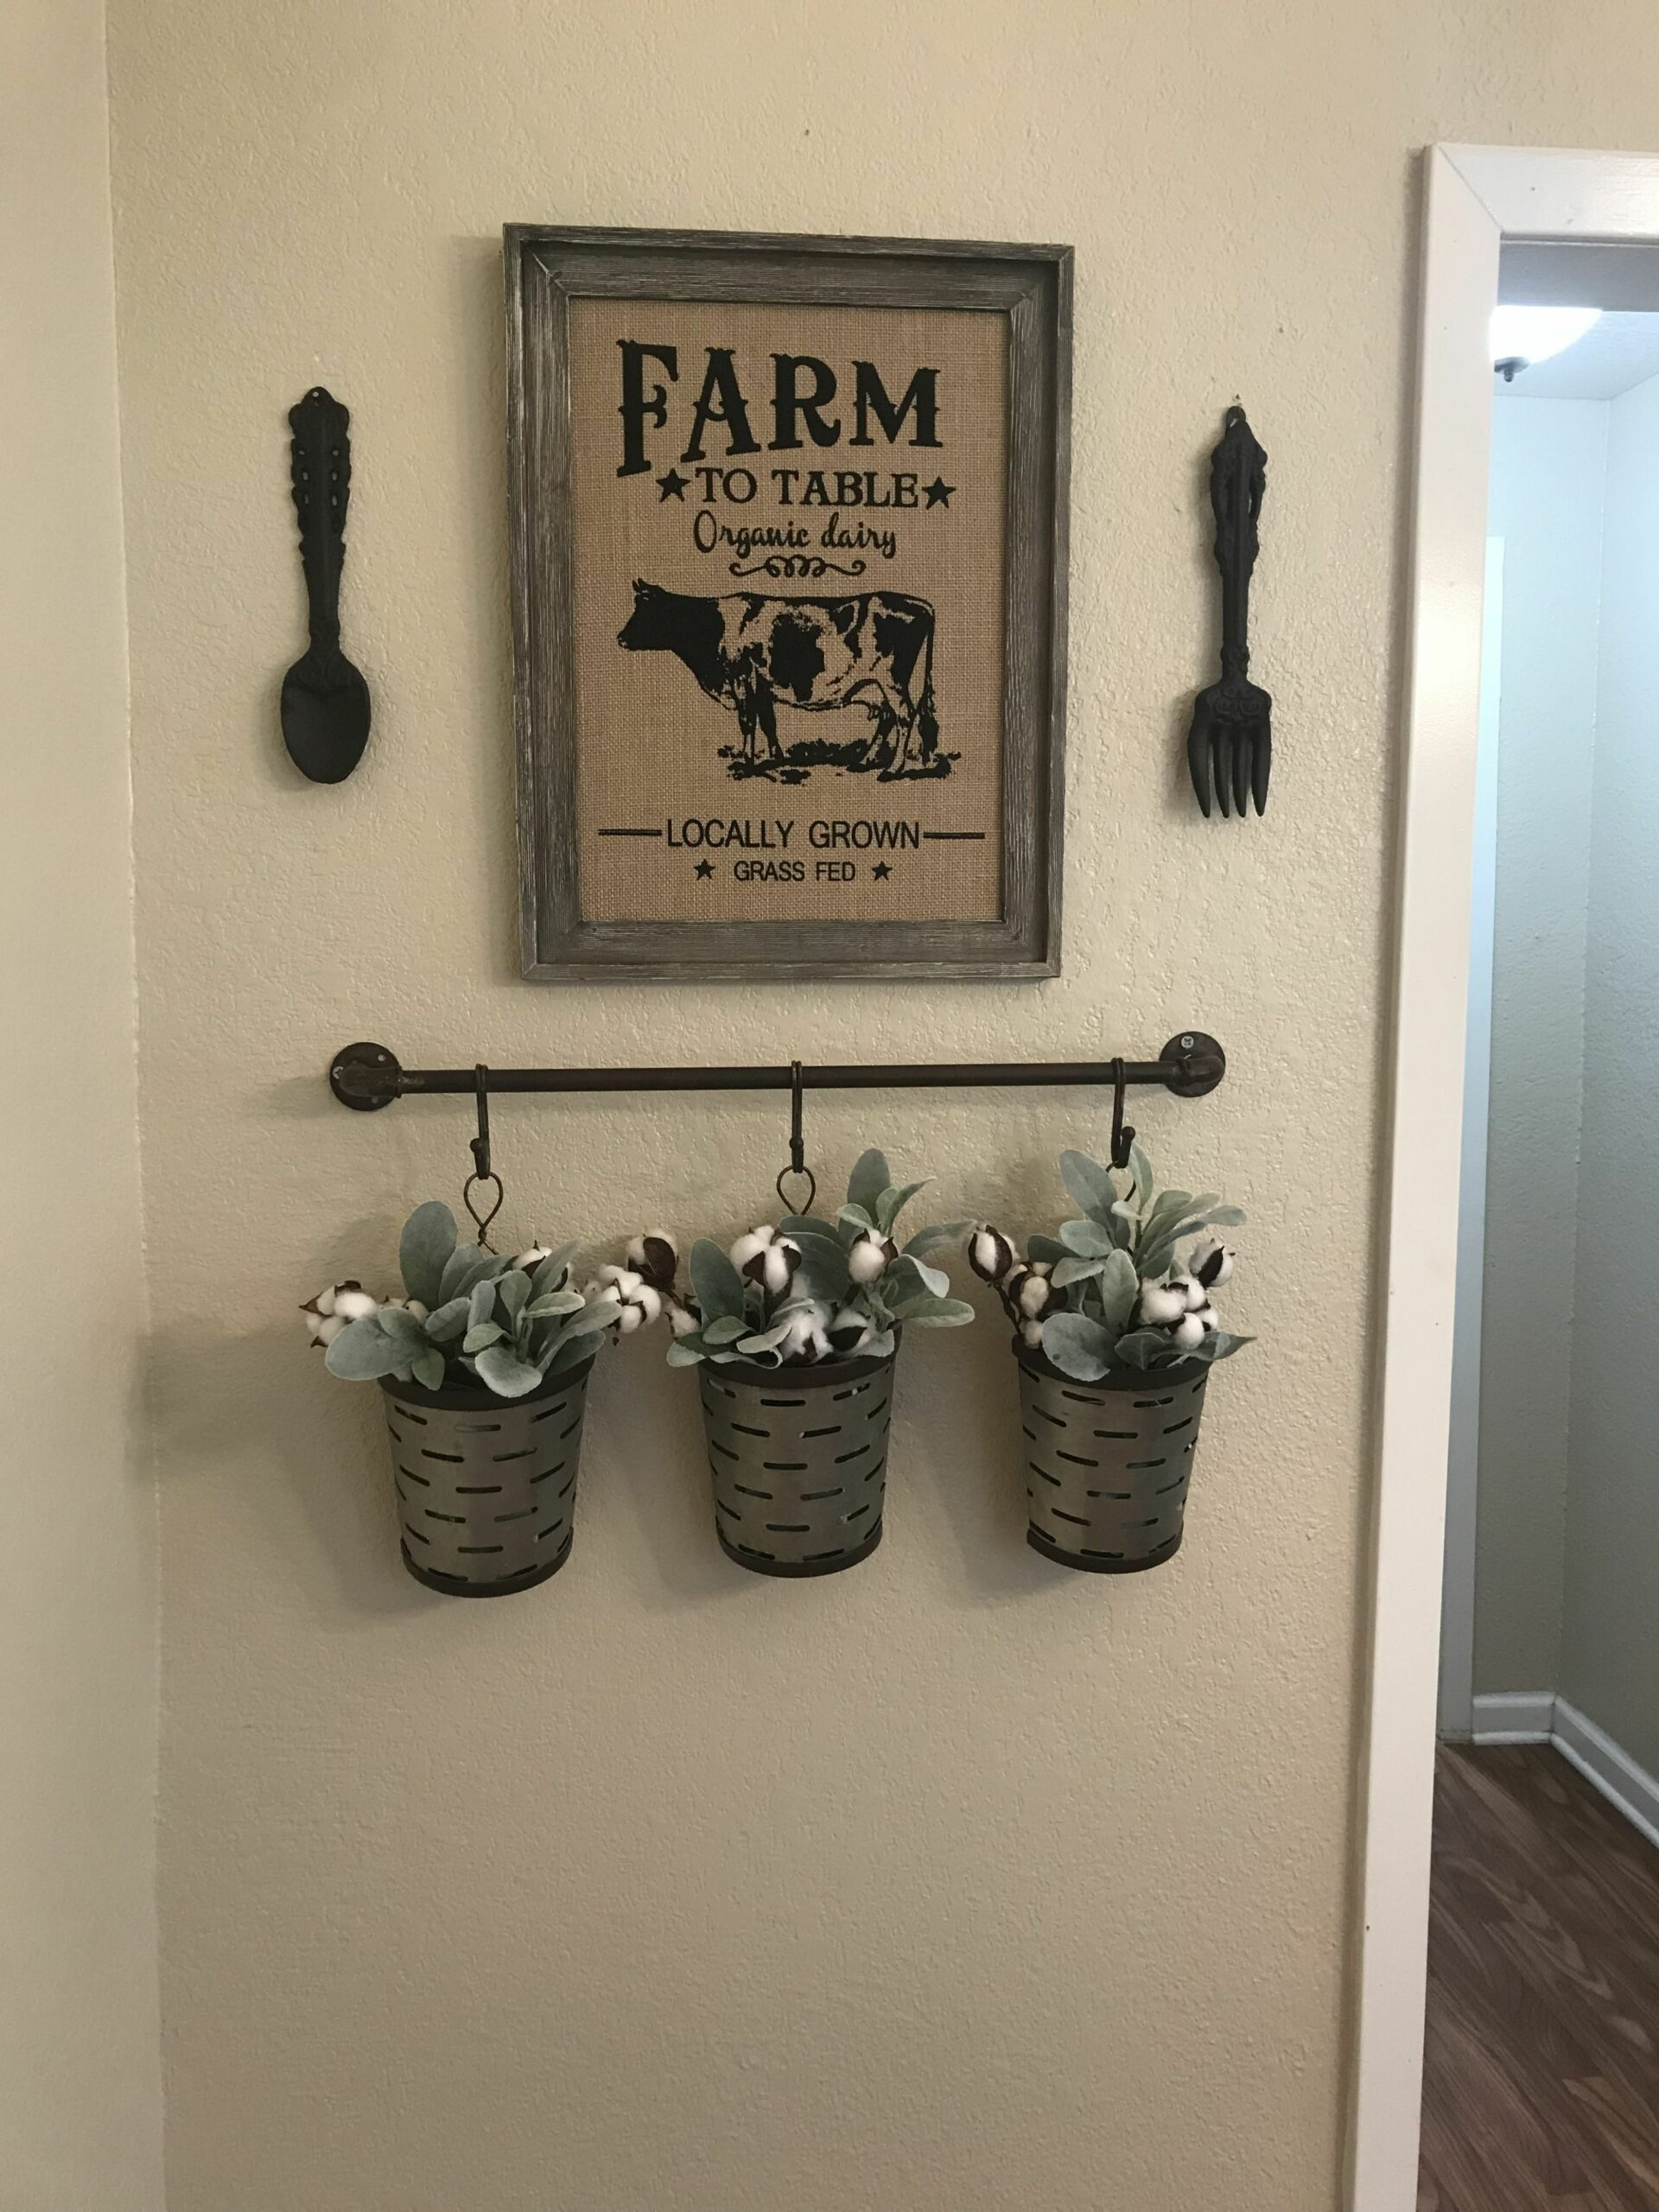 Dining room farmhouse decor from Hobby Lobby. | Bauernhaus küchen ..